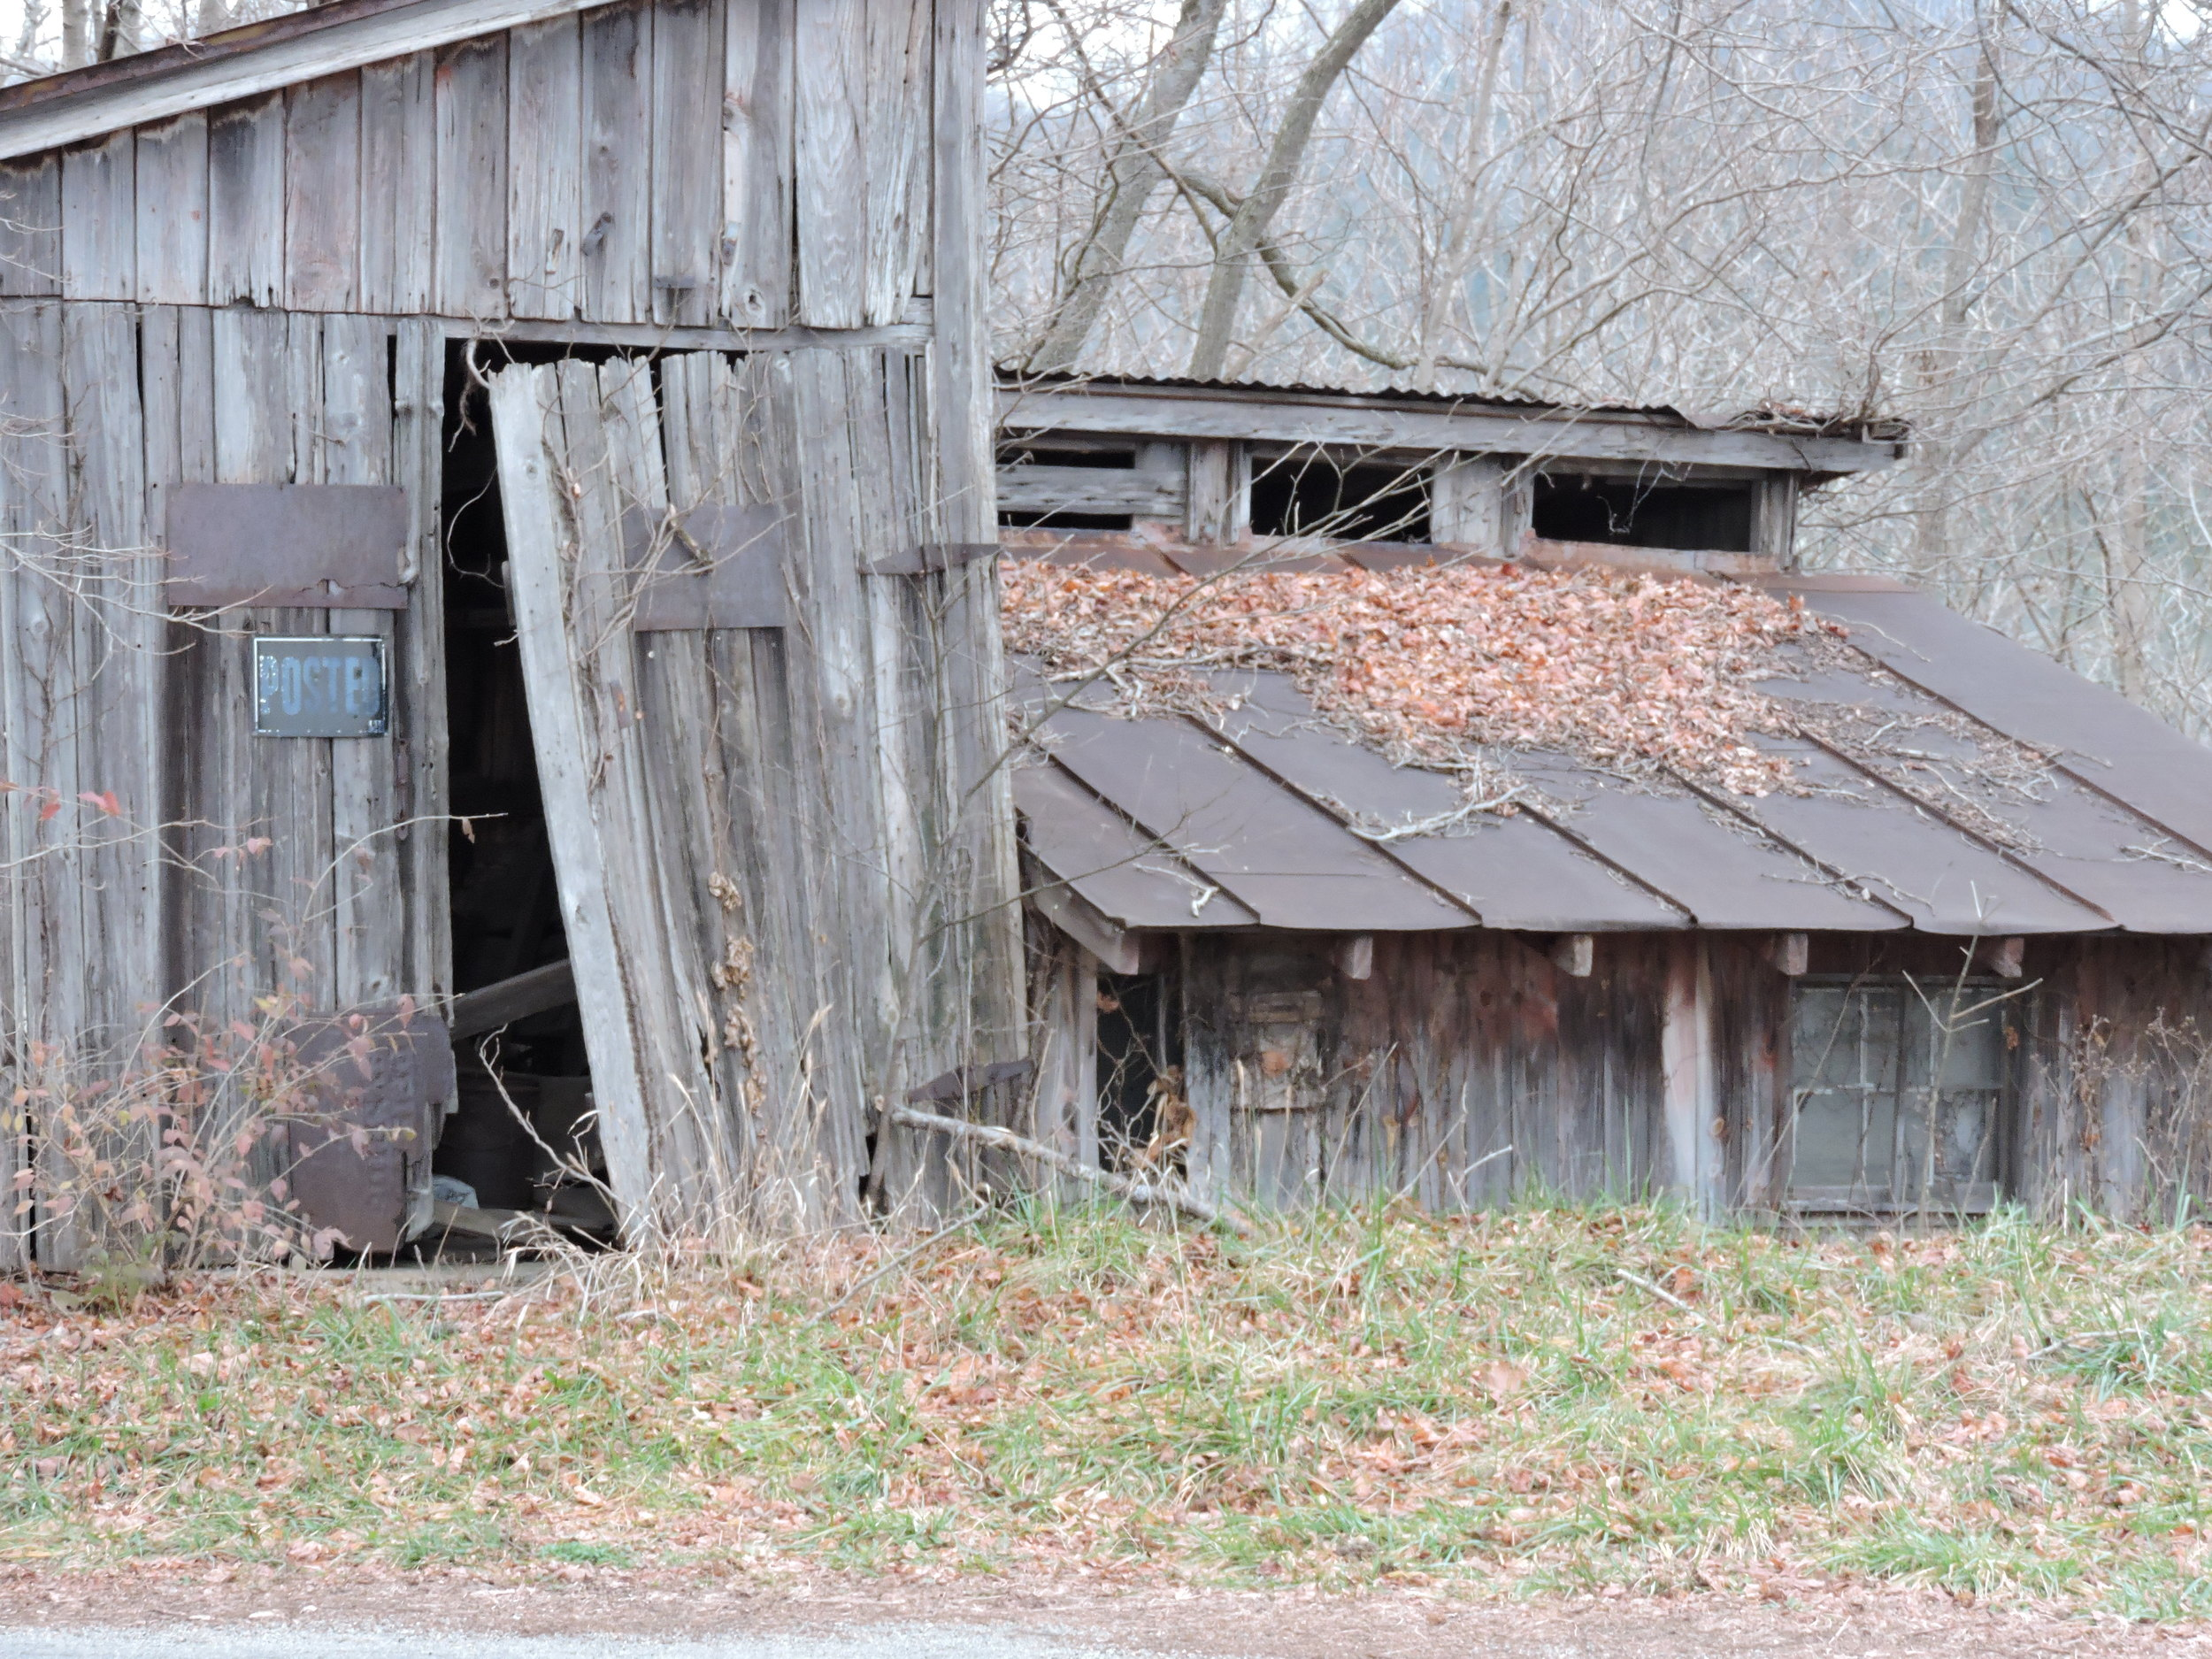 Barn built in 1880 in Southern Indiana